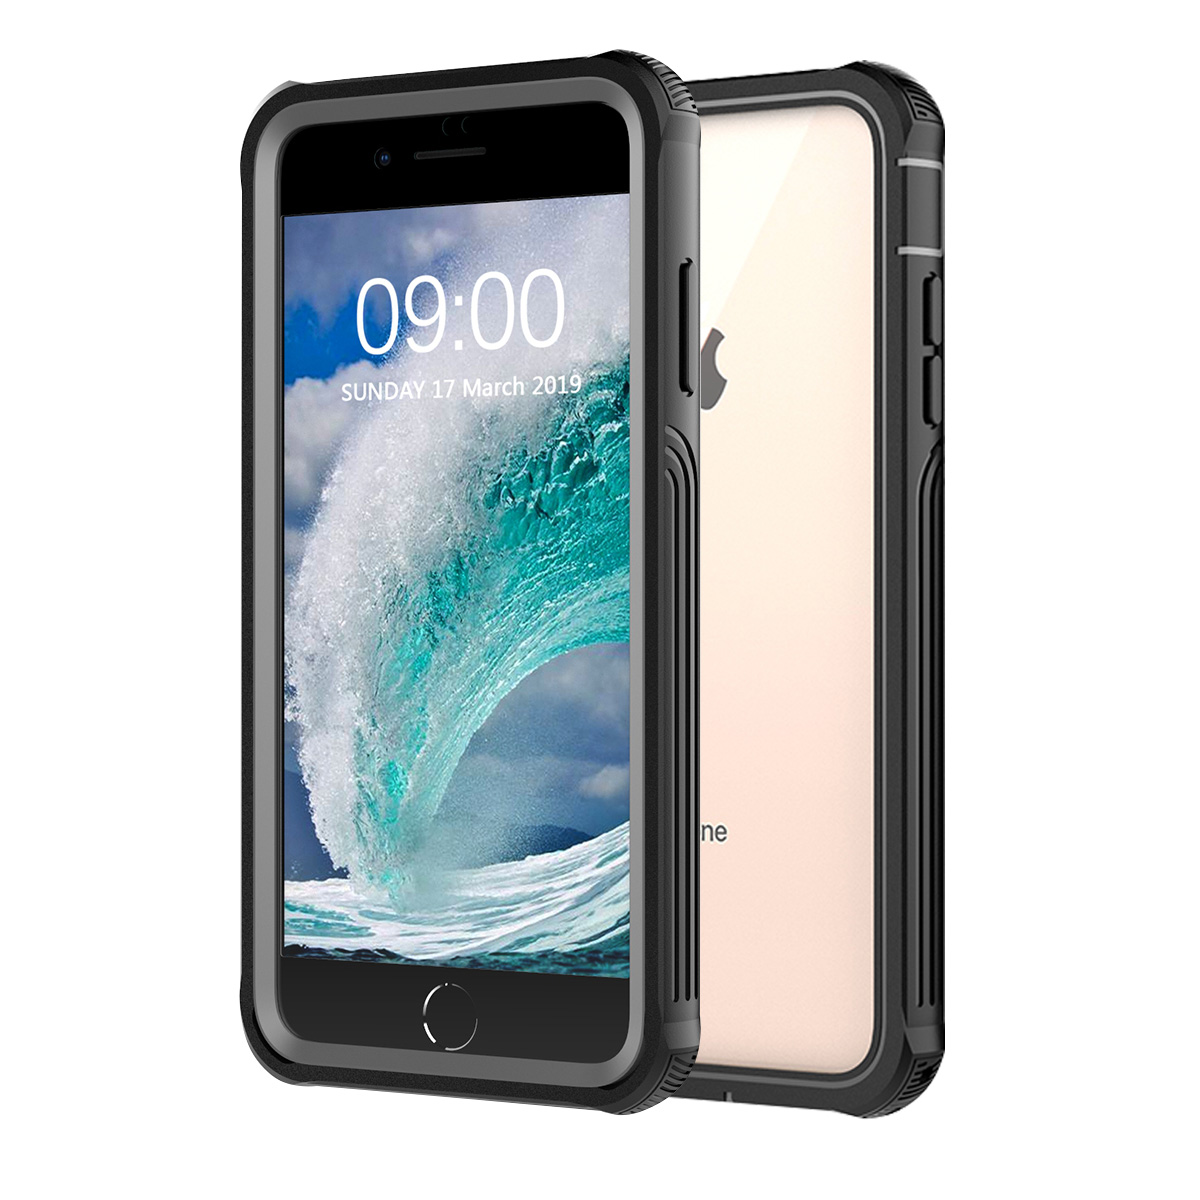 on sale 2ea44 0e375 Details about Waterproof Phone Case Cover with Screen Protector For Apple  iPhone 6 6s 7 8 Plus